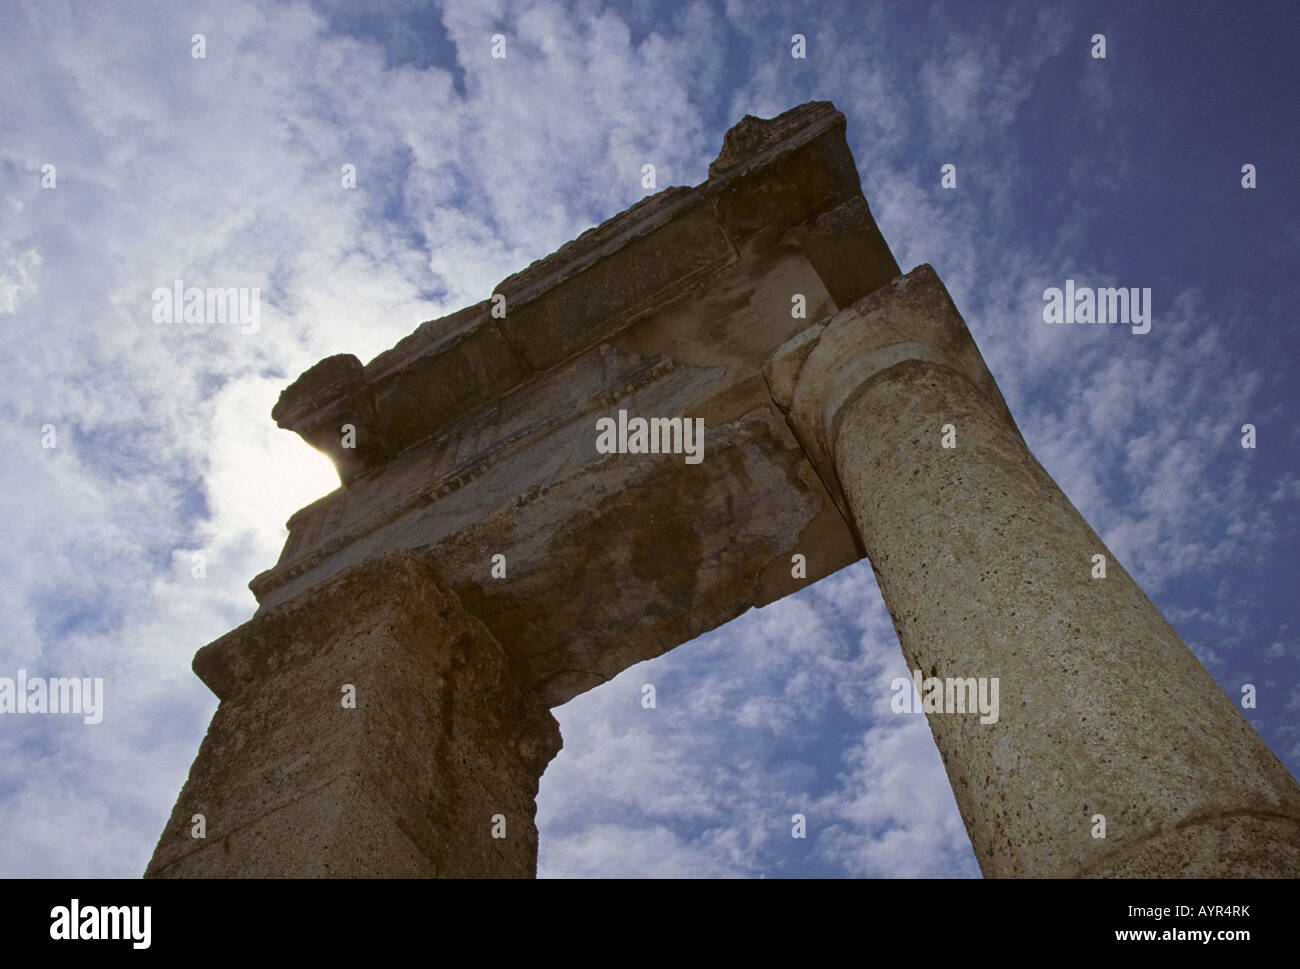 Pillars, Doric temple ruins in the ancient town of Kamiros on Rhodos Island, Dodecanese Islands, Aegean, Greece - Stock Image